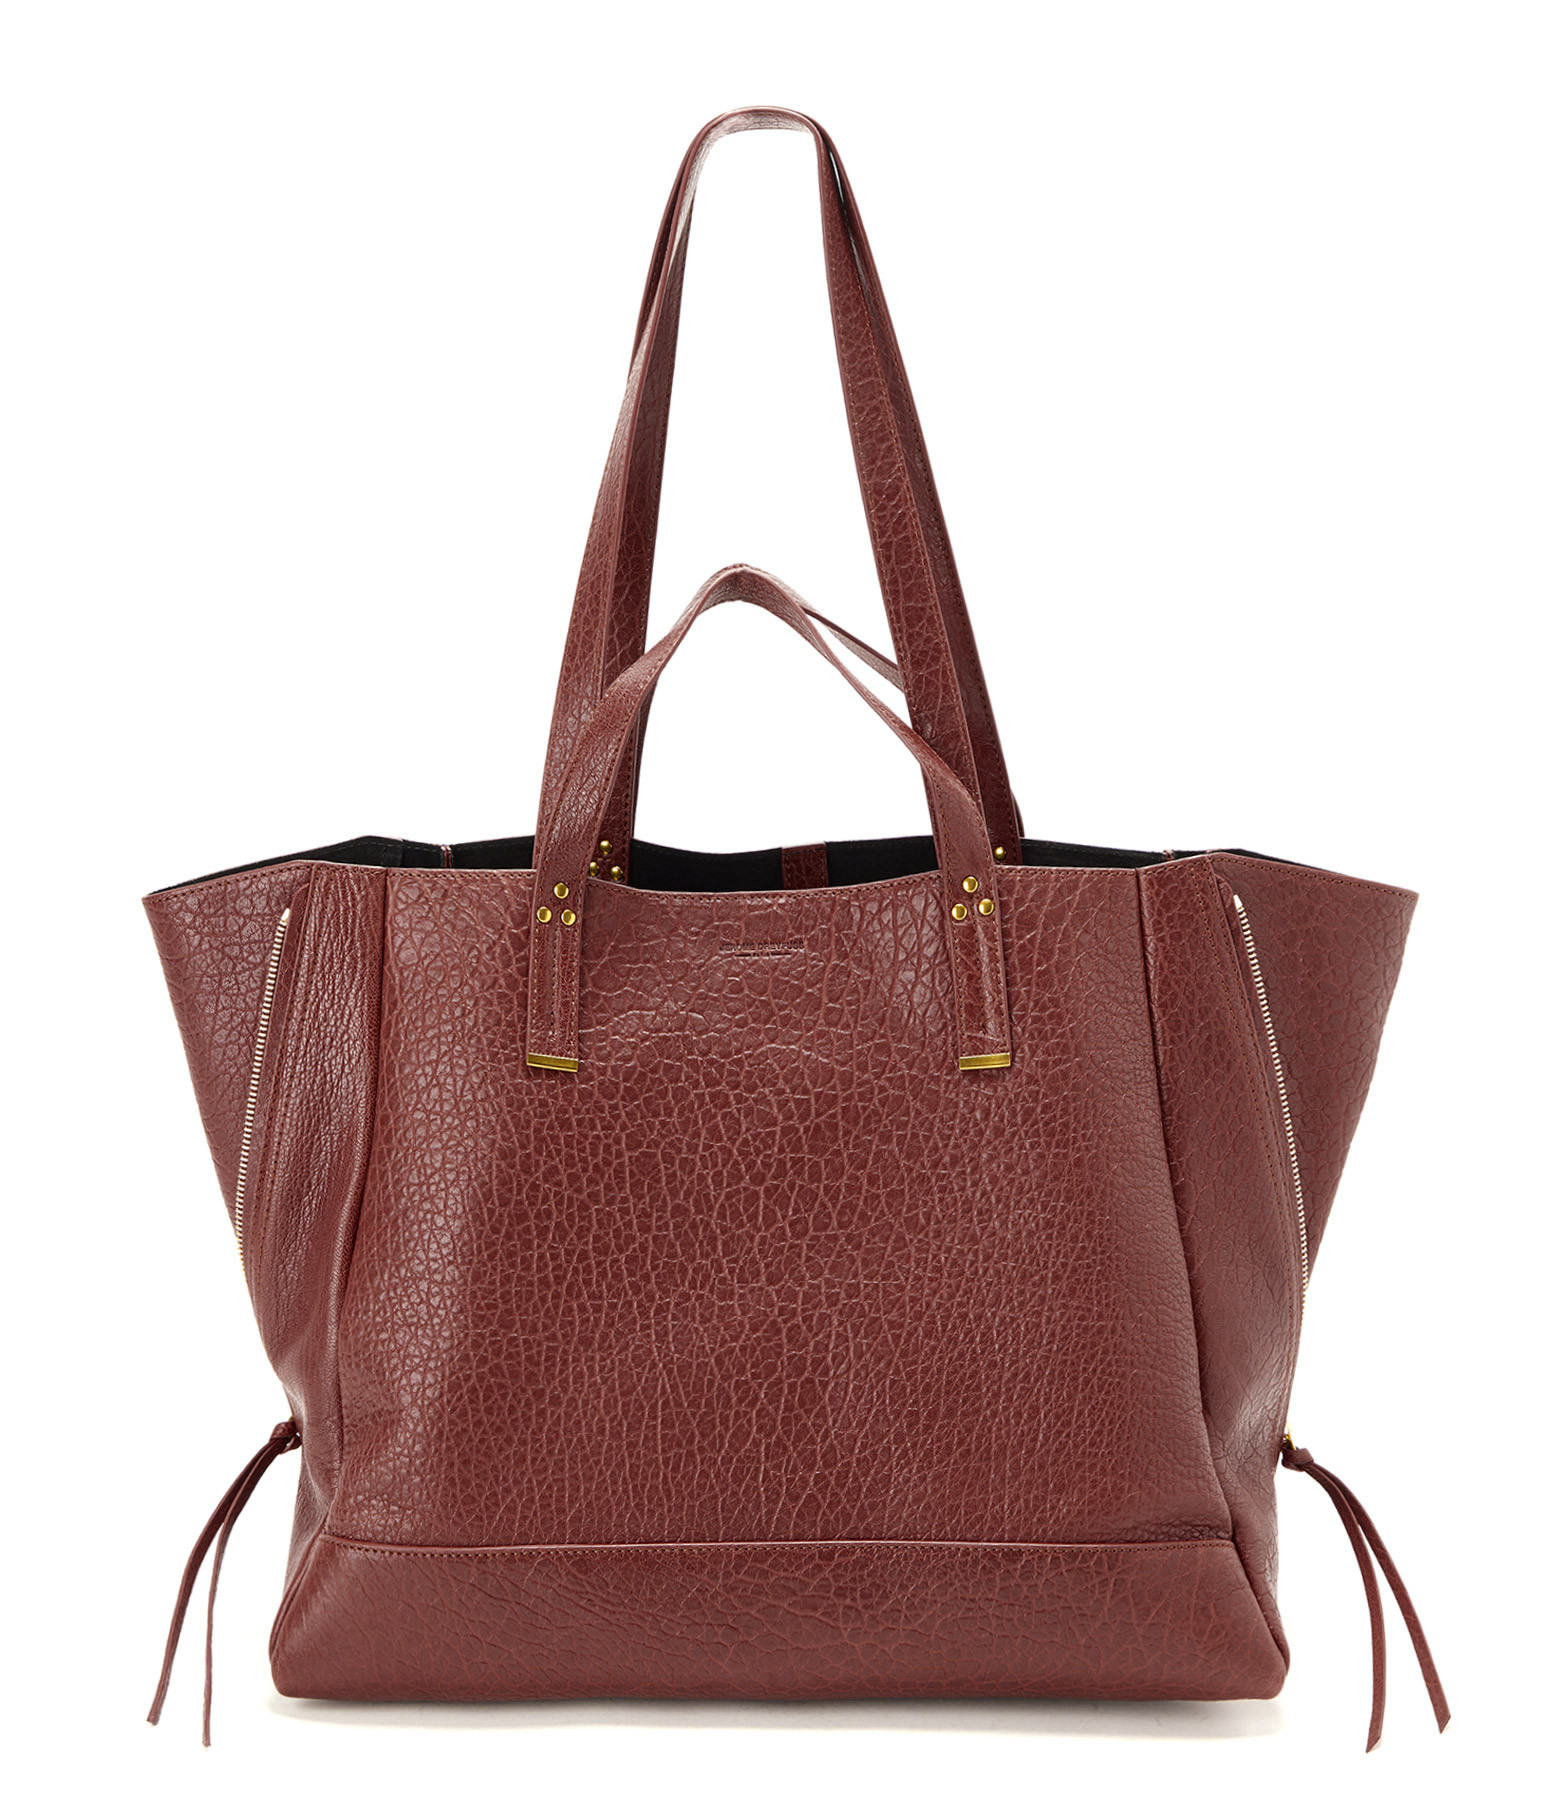 JEROME DREYFUSS - Sac Georges L Agneau Old Red